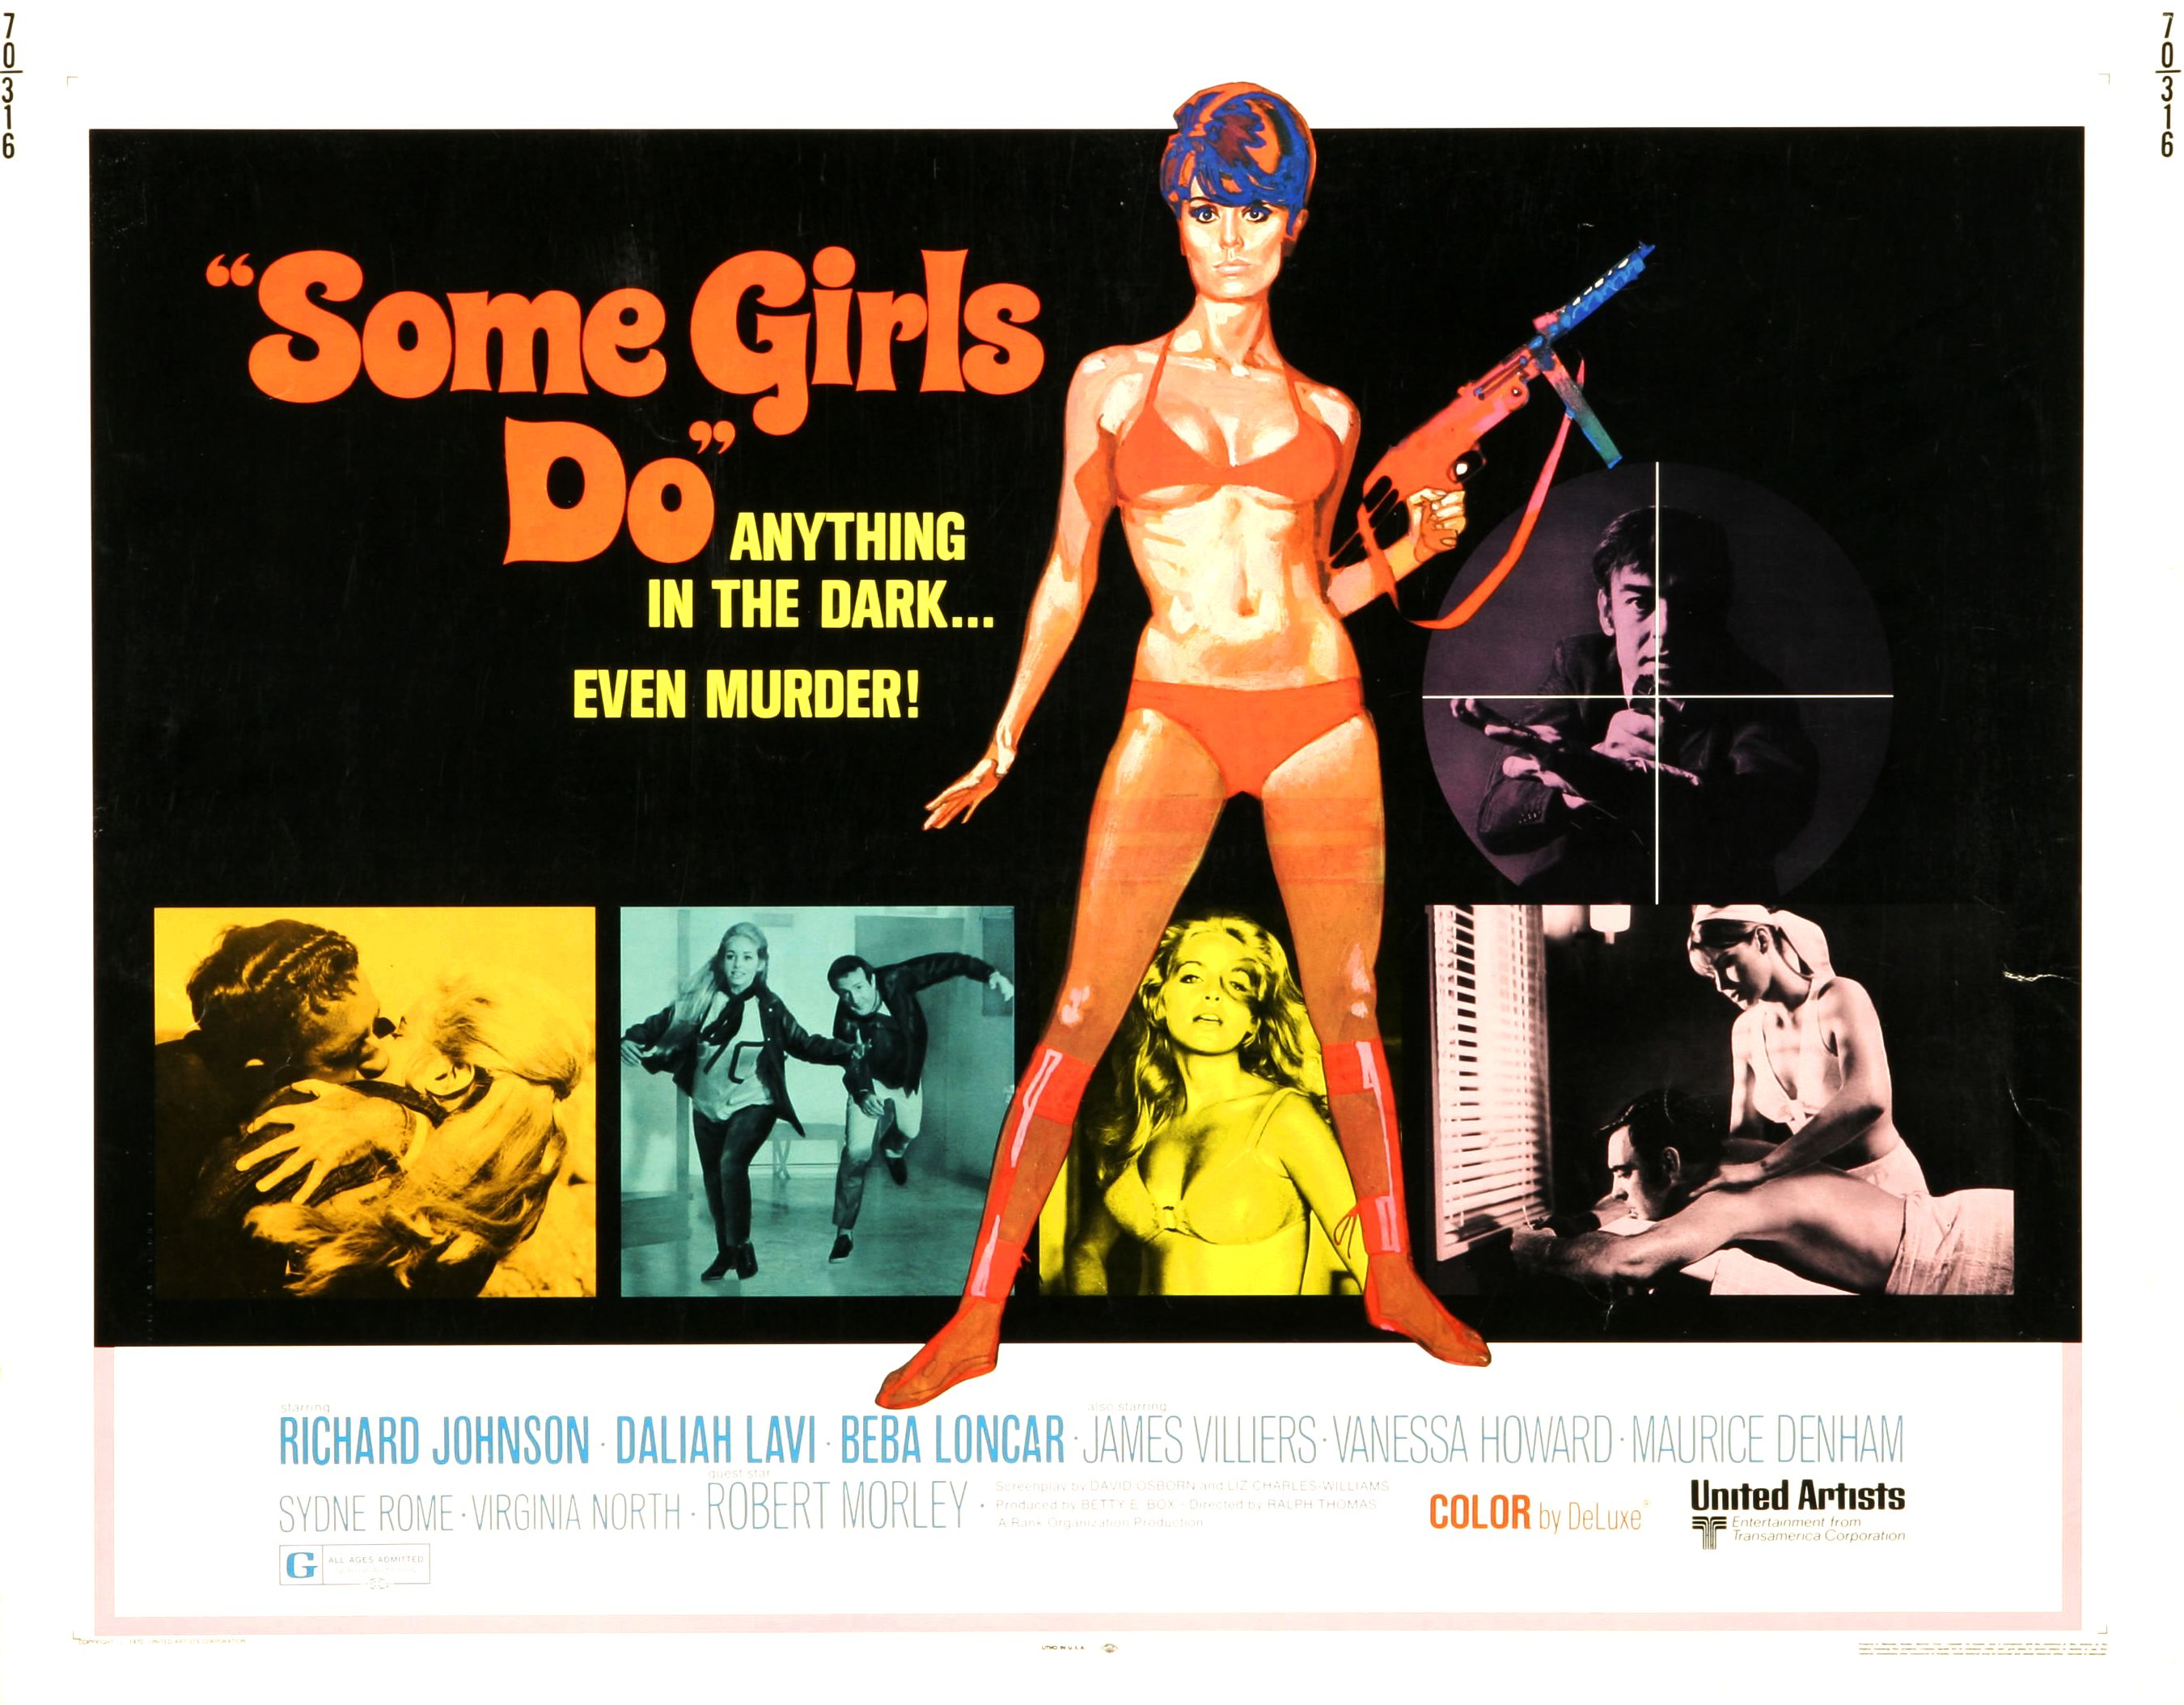 Some Girls Do (1969)